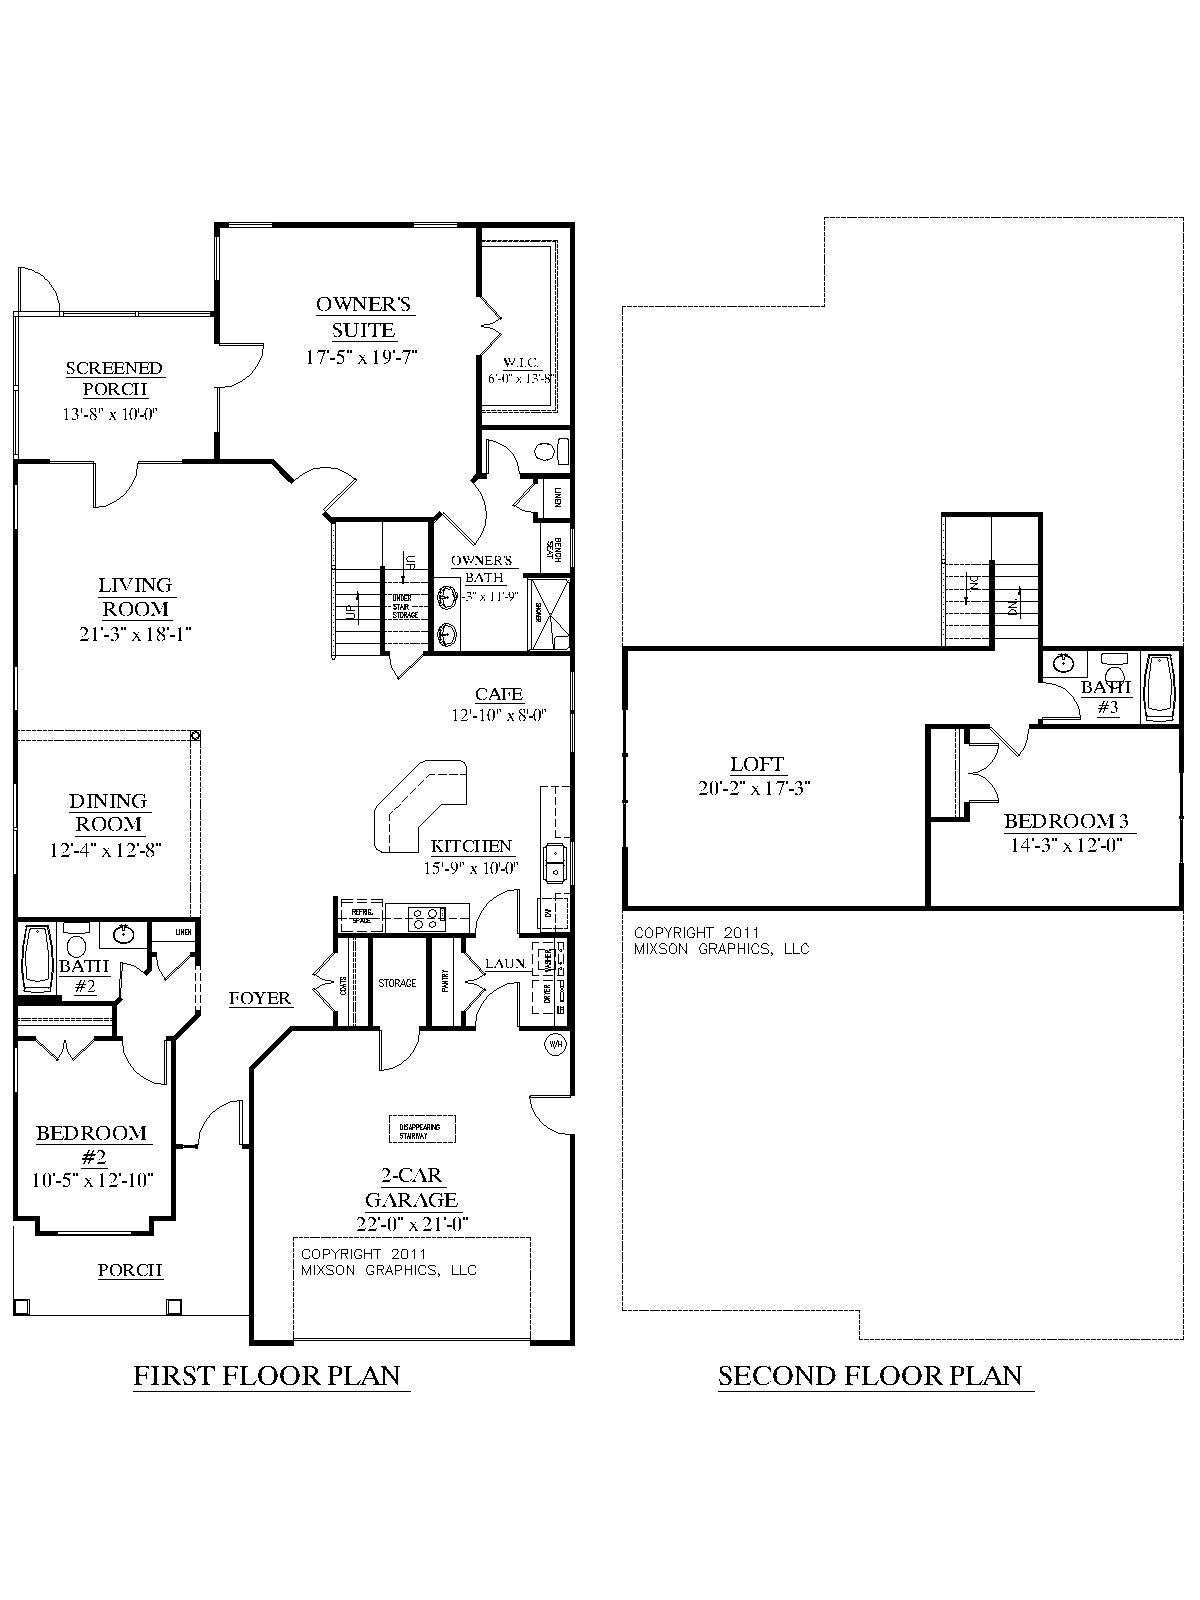 Beautiful Master Bedroom Addition Plans | Elegant 20x20 Master Bedroom Floor Plan